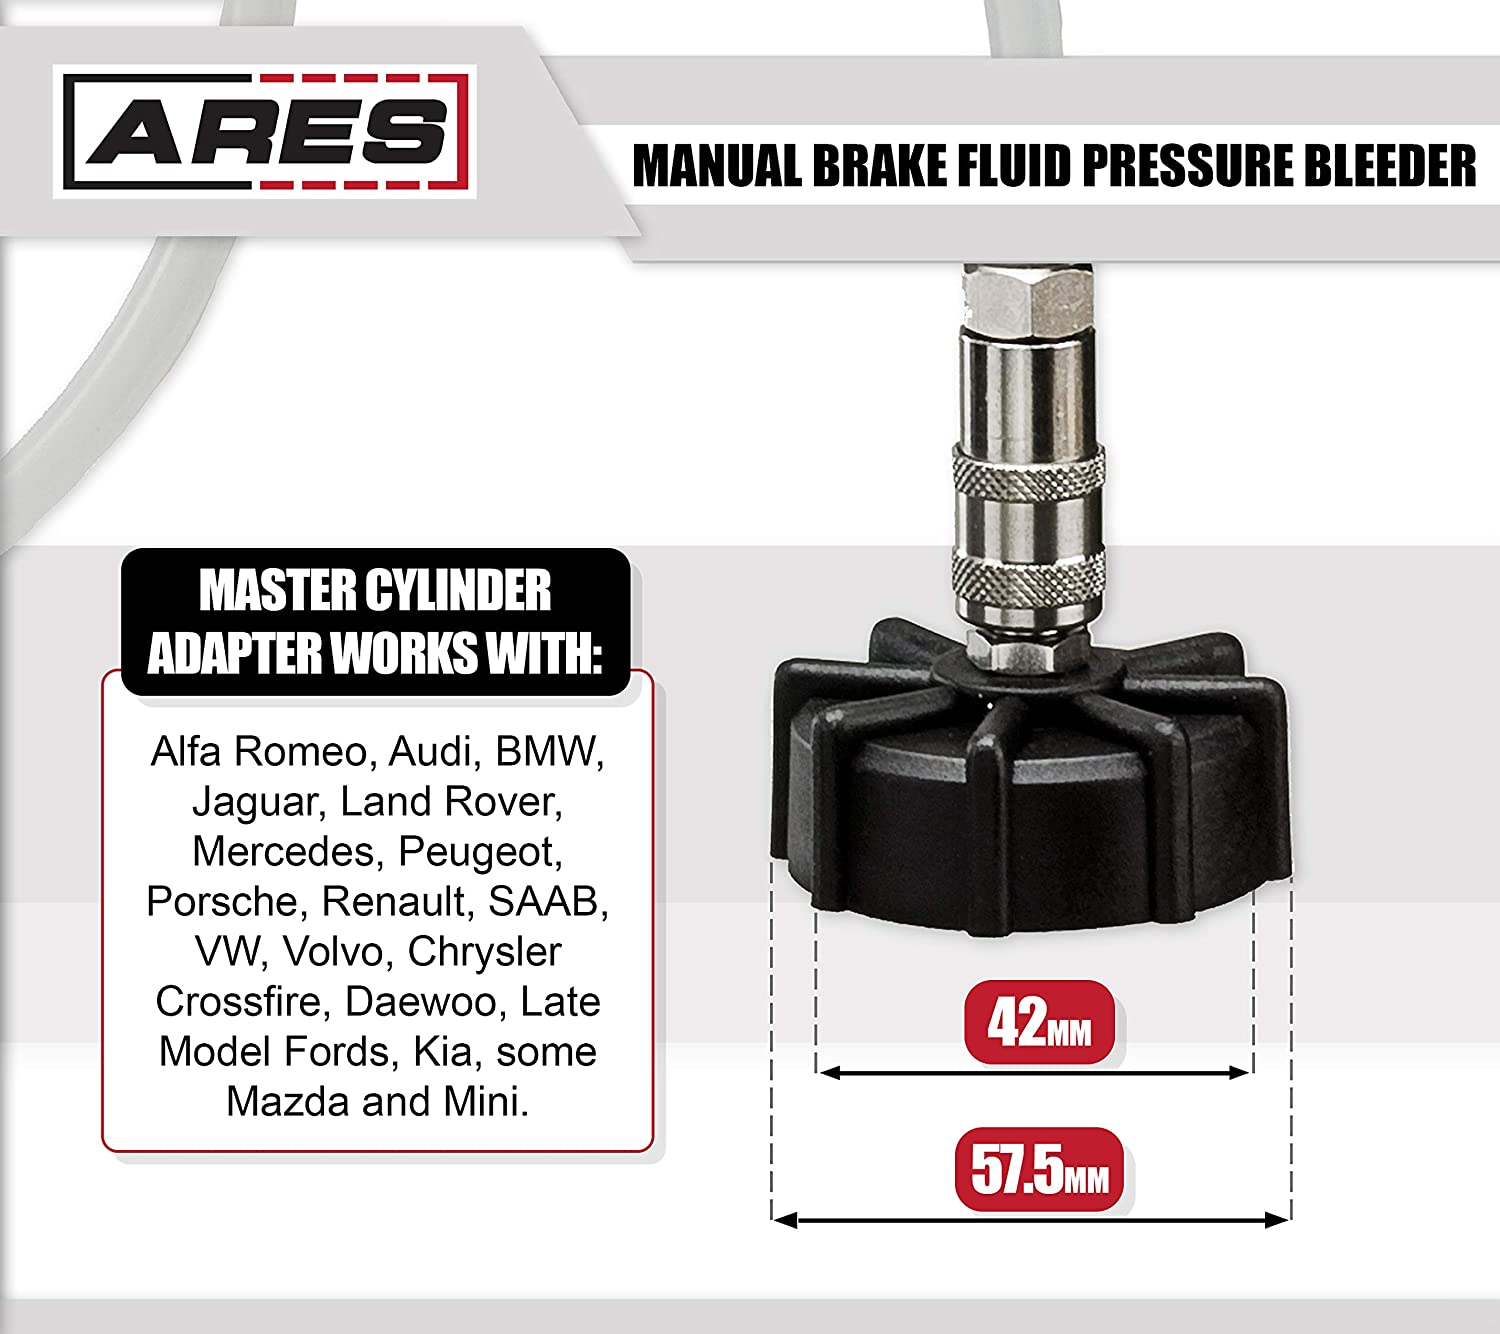 Amazon.com: ARES 70921 | 2L Manual Brake Fluid Pressure Bleeder | Makes  Brake Fluid Changes Quick and Easy | Easy One Person Manual Pump Operation:  ...